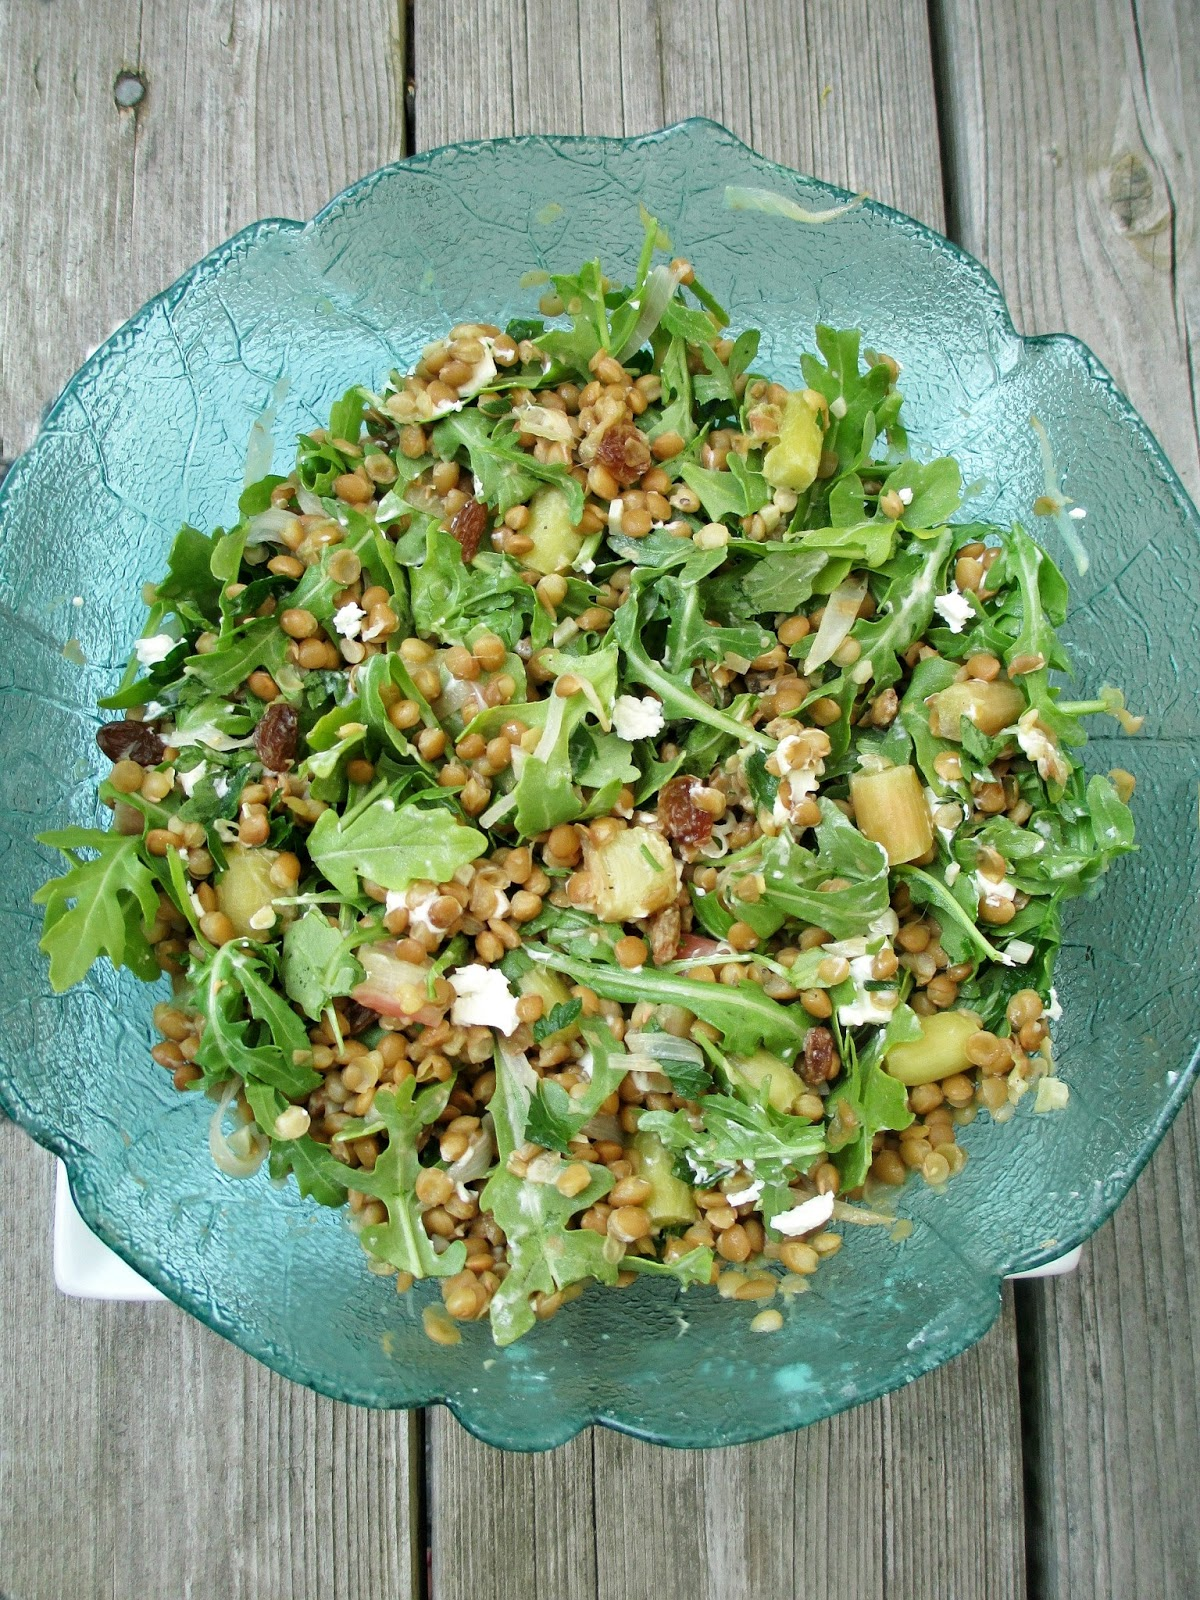 seasonal salad combining rhubarb with lentils arugula and goat cheese